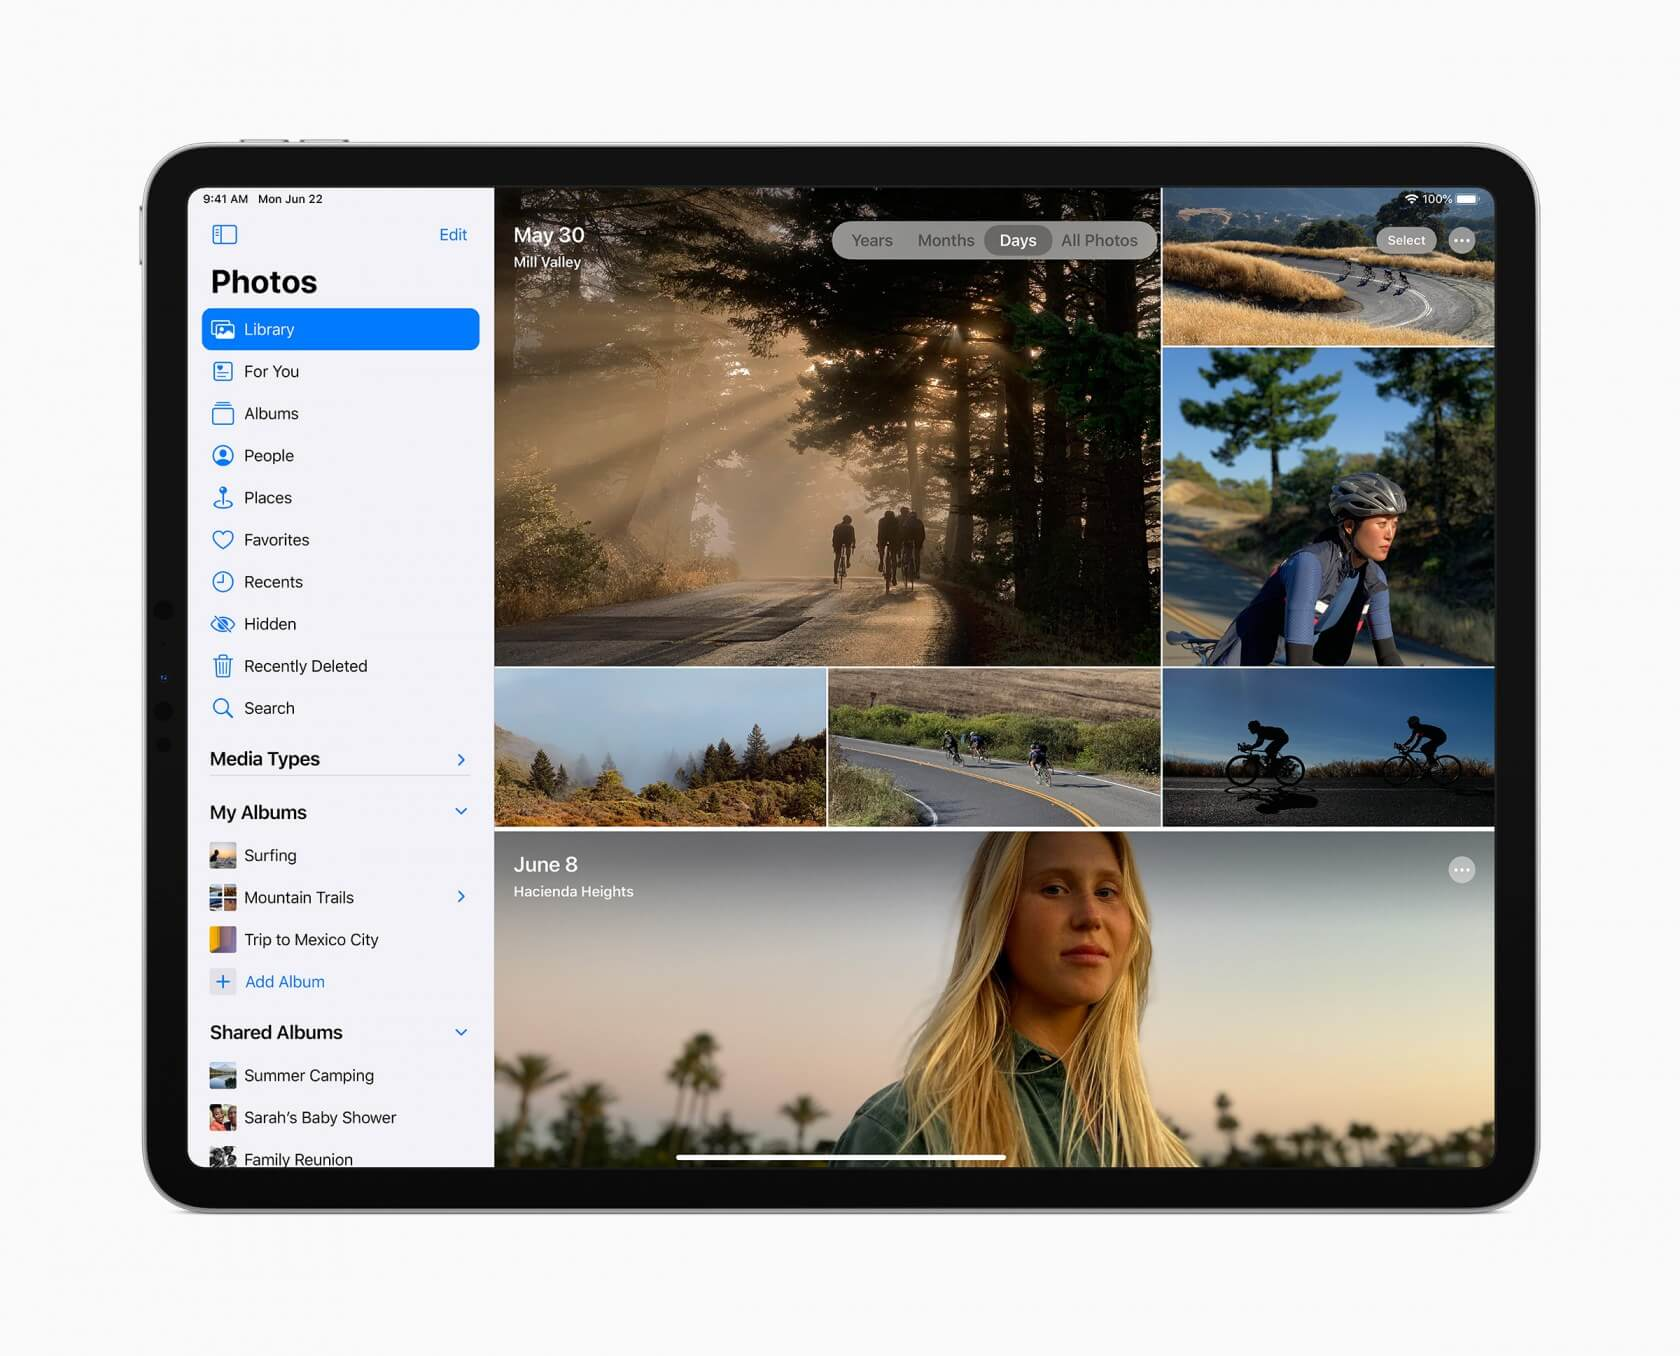 iPadOS 14 arrives this fall with improved Search functionality and streamlined navigation